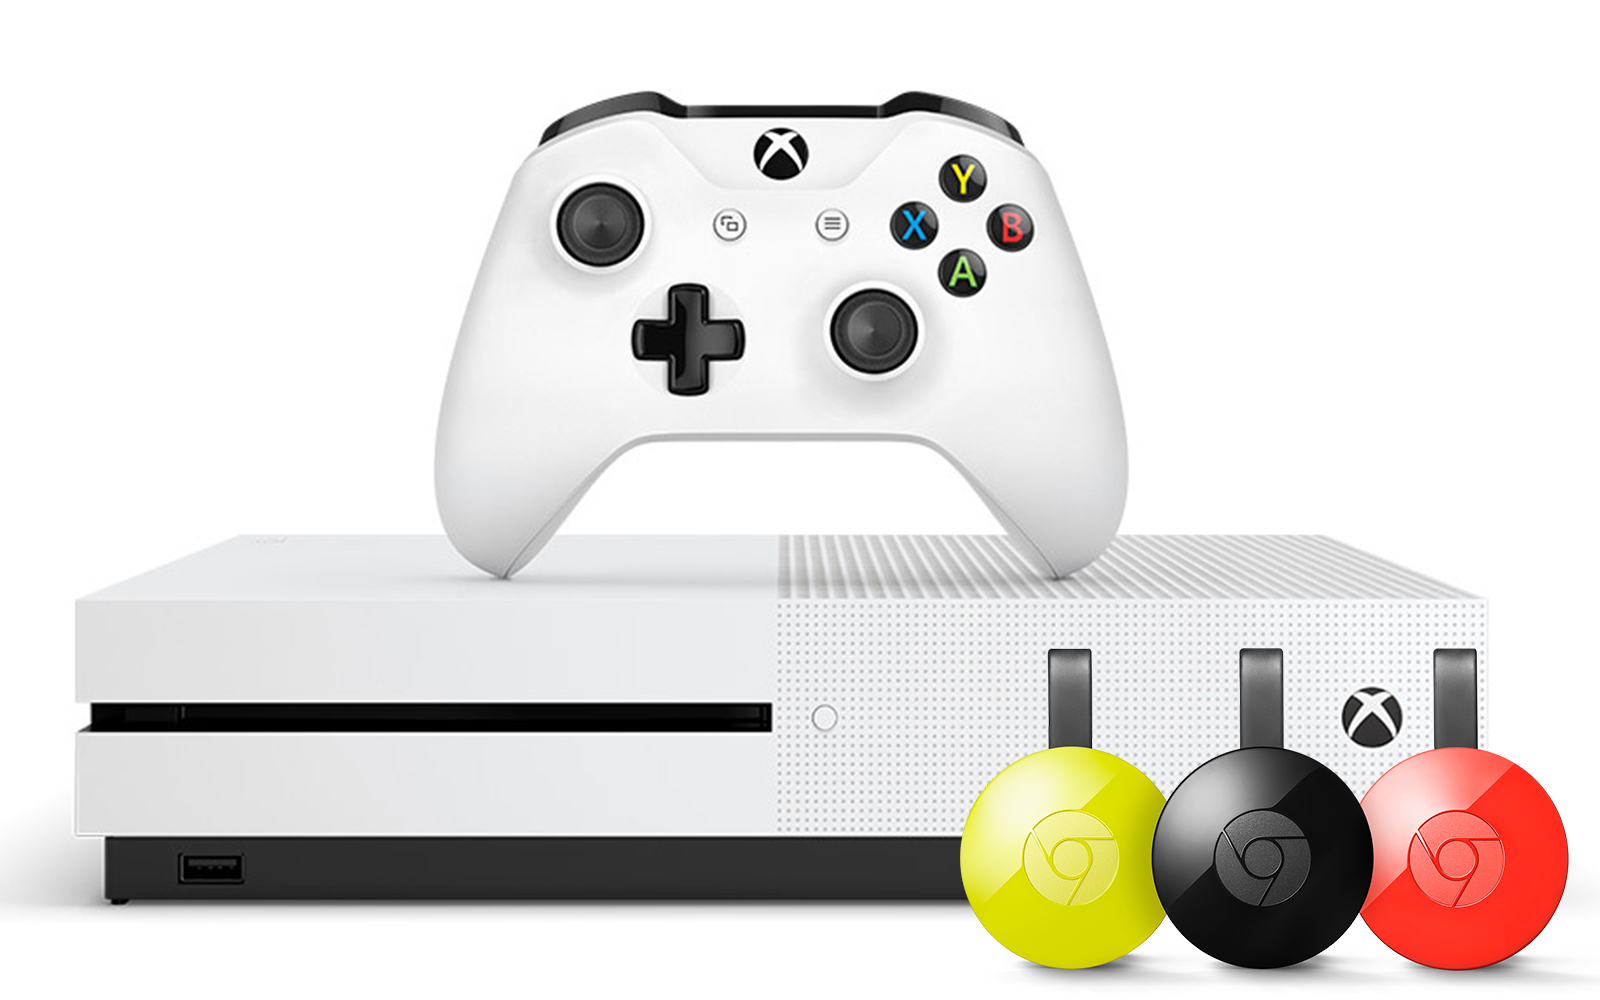 xbox one hook up diagram electrical wiring diagrams xbox 360 connection diagram for stereo and tv xbox one tv setup diagram schematic diagrams xbox 1 wiring diagram how to use your chromecast